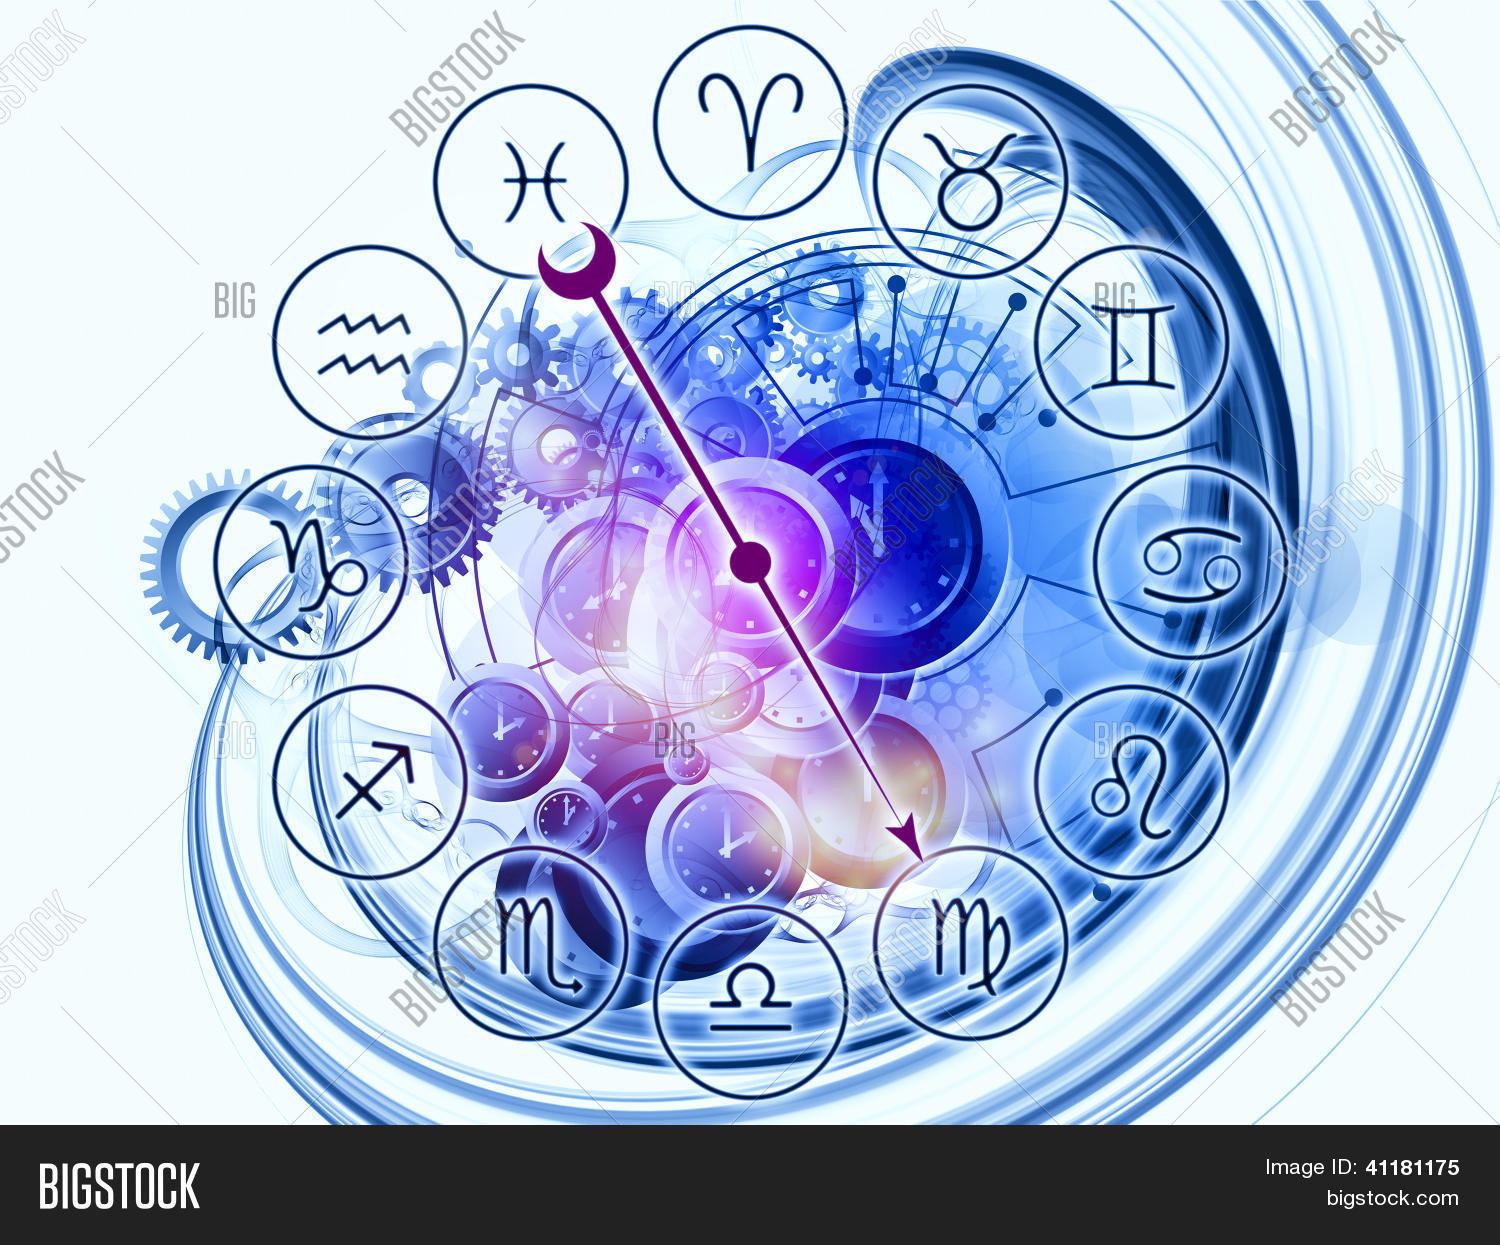 Abstract Zodiac Image & Photo (Free Trial) | Bigstock